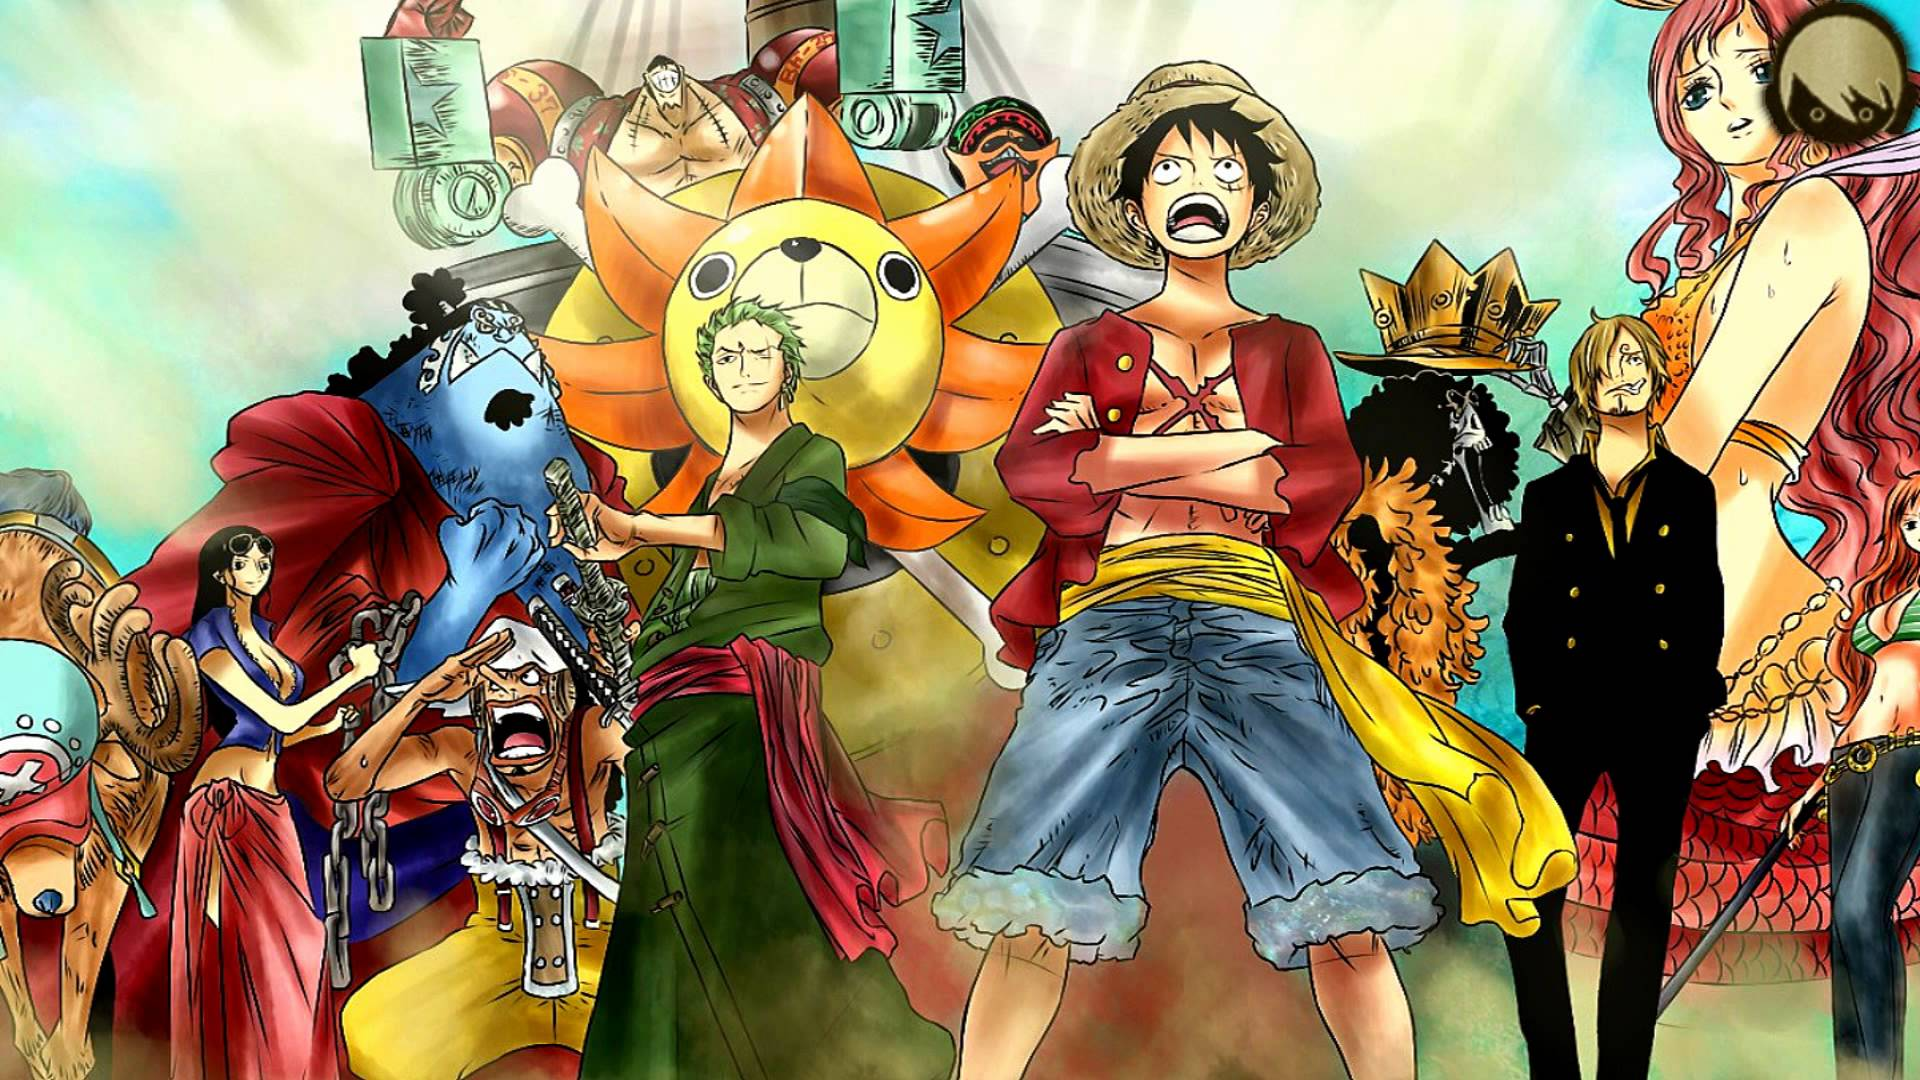 The Straw Hat Crew Full HD Wallpaper And Background Image